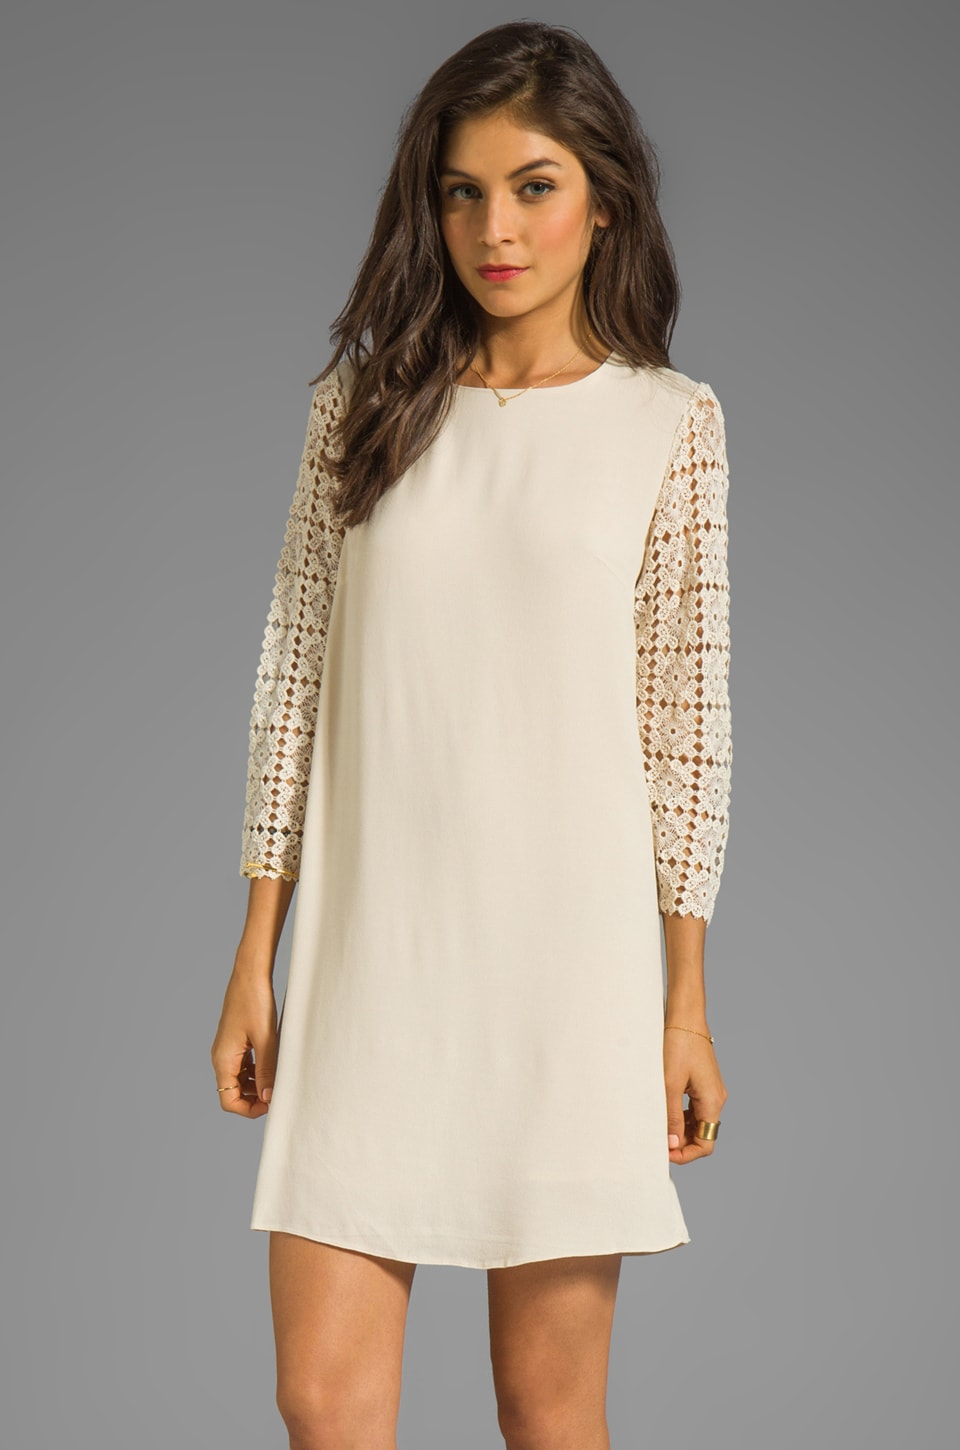 MM Couture by Miss Me Long Sleeve Dress with Lace Sleeve in Beige